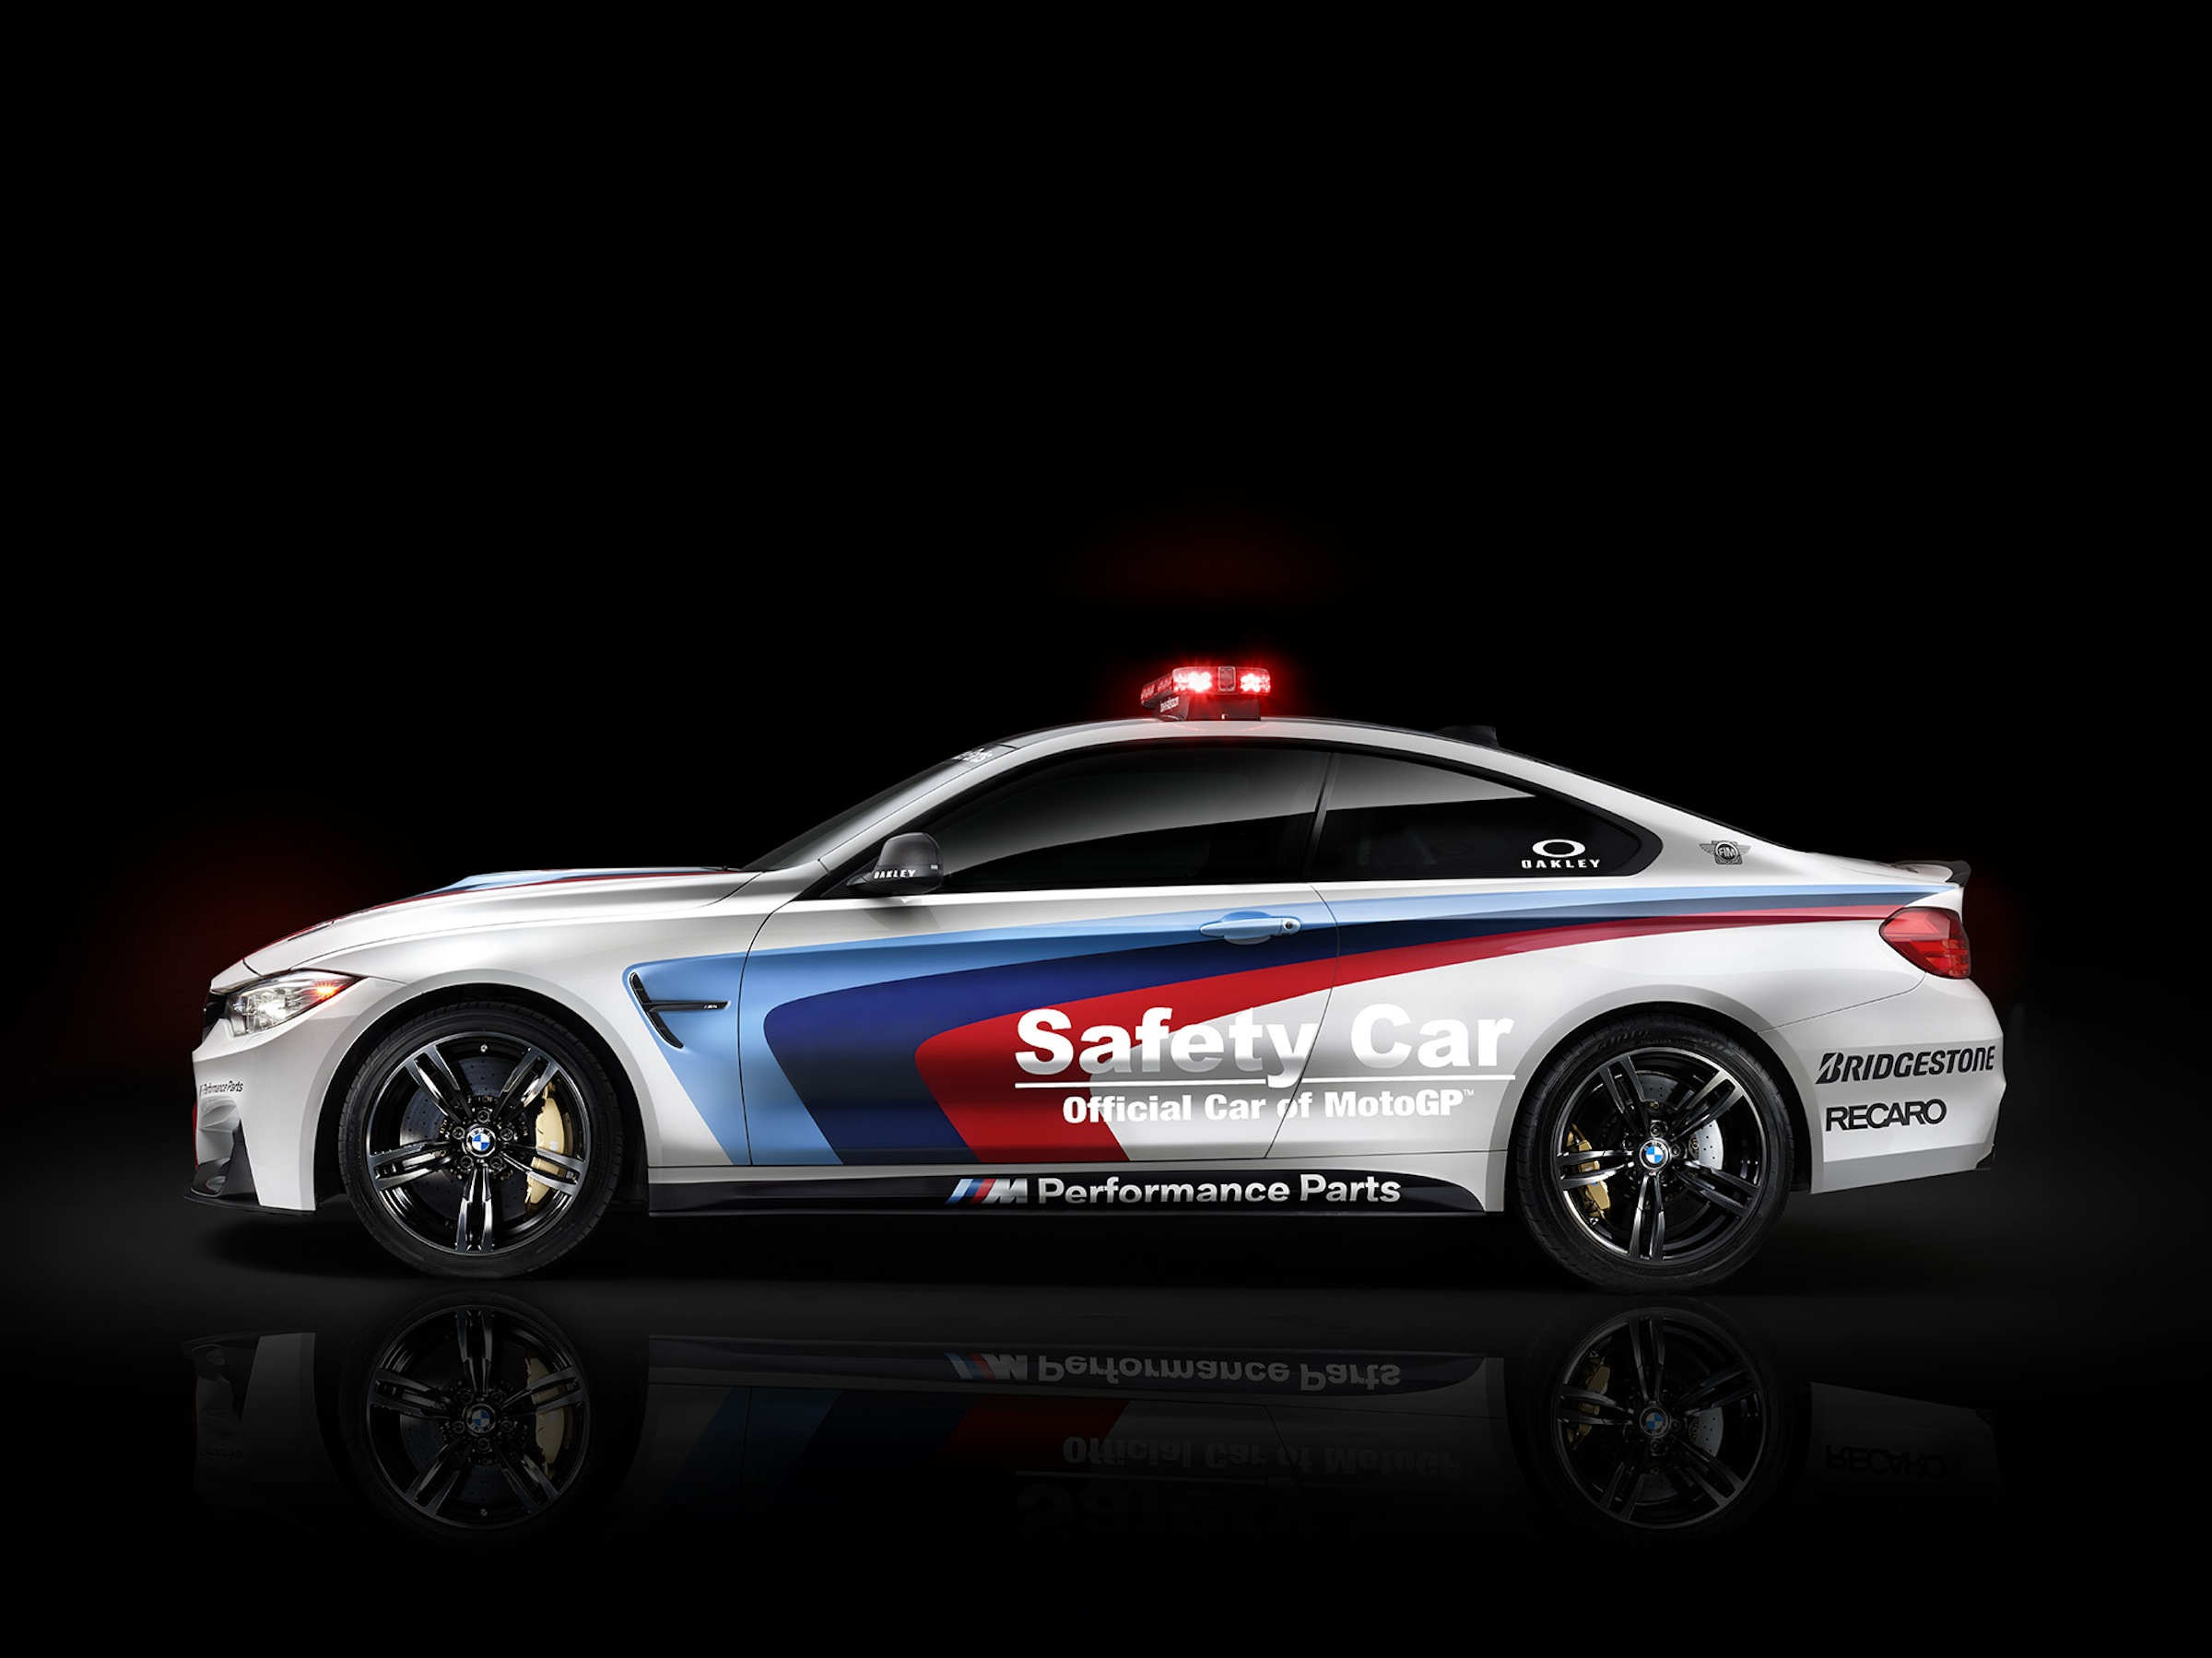 bmw m4 safety car videos from qatar motogp race. Black Bedroom Furniture Sets. Home Design Ideas